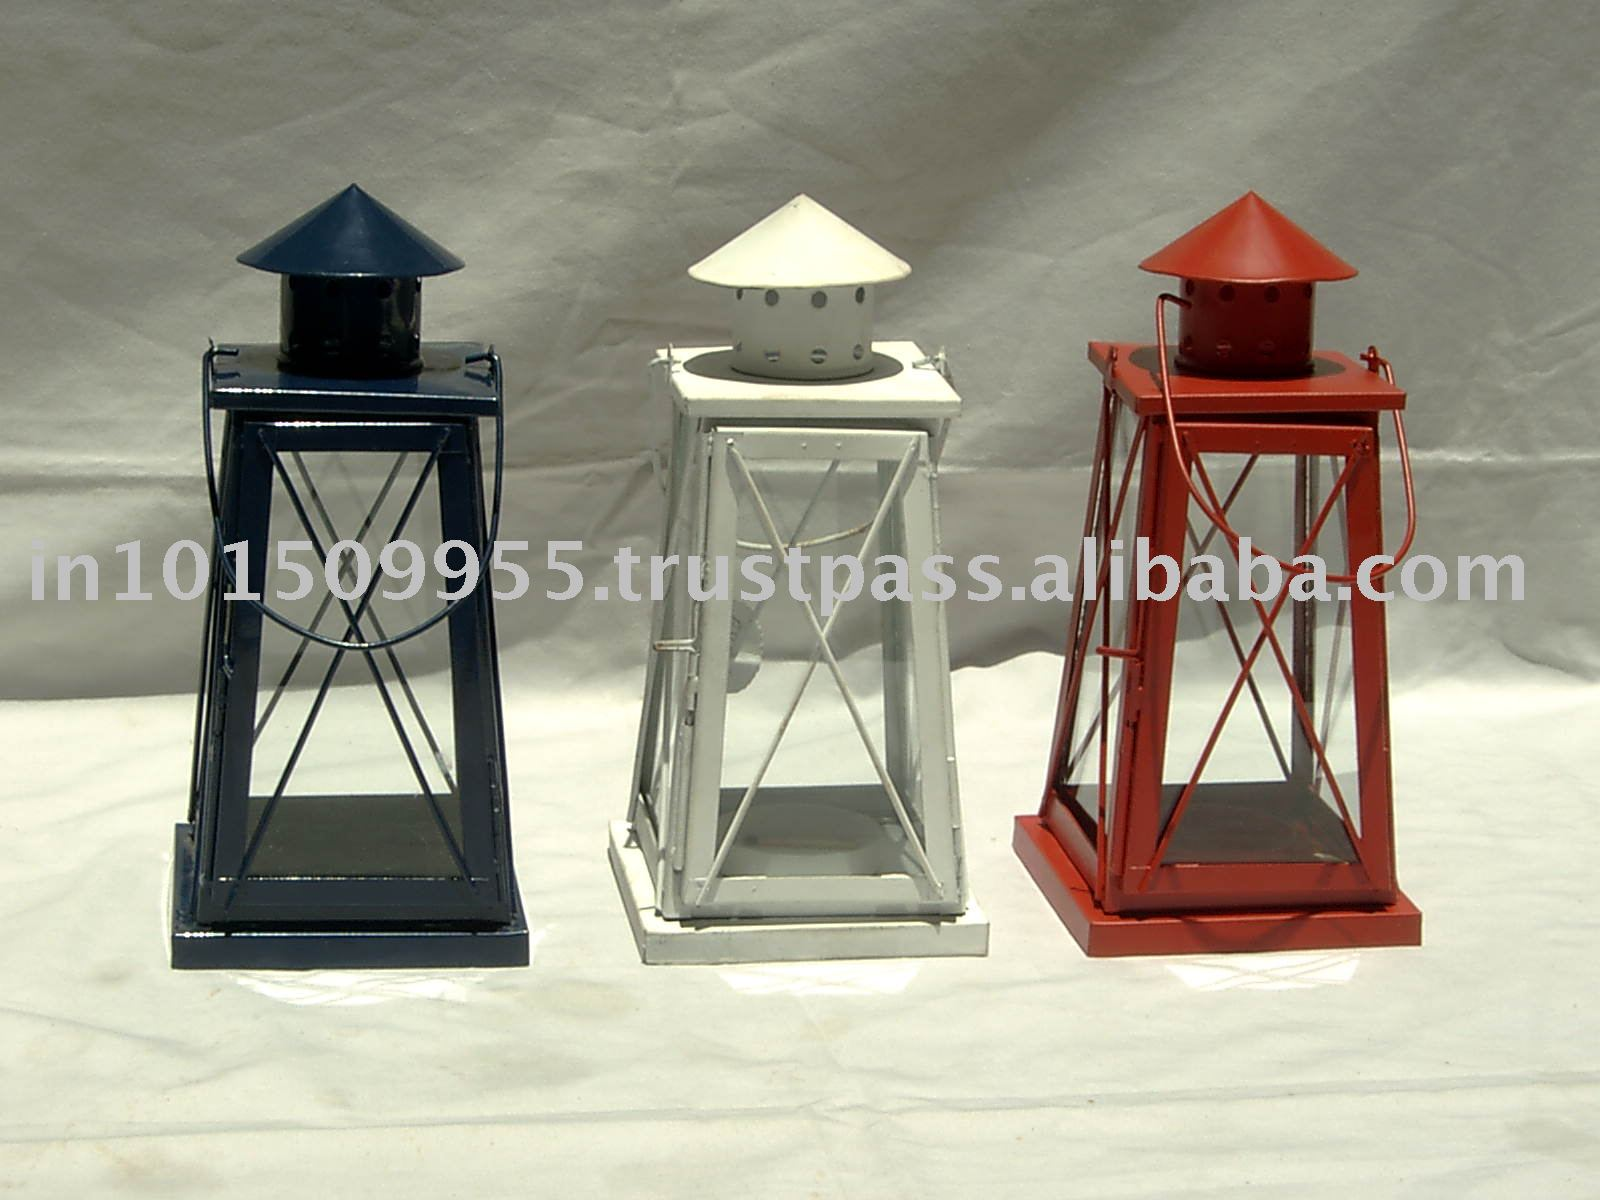 Lantern At Buy Best Prices On India Arts Palace